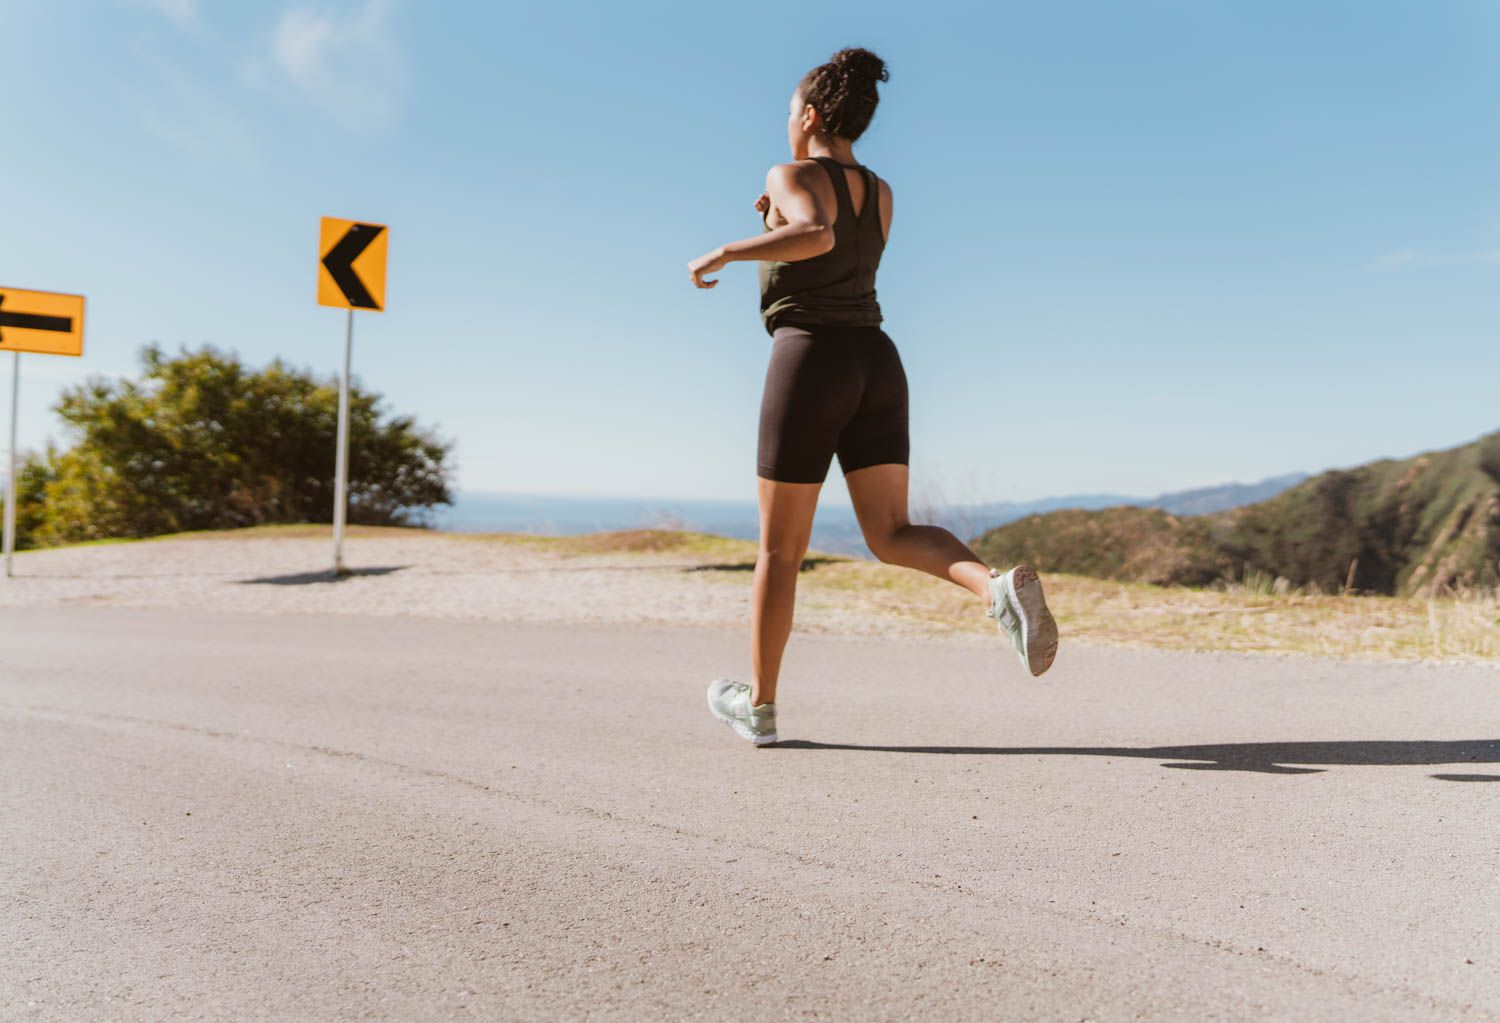 Things You Need to Know About Running With a Running Blade